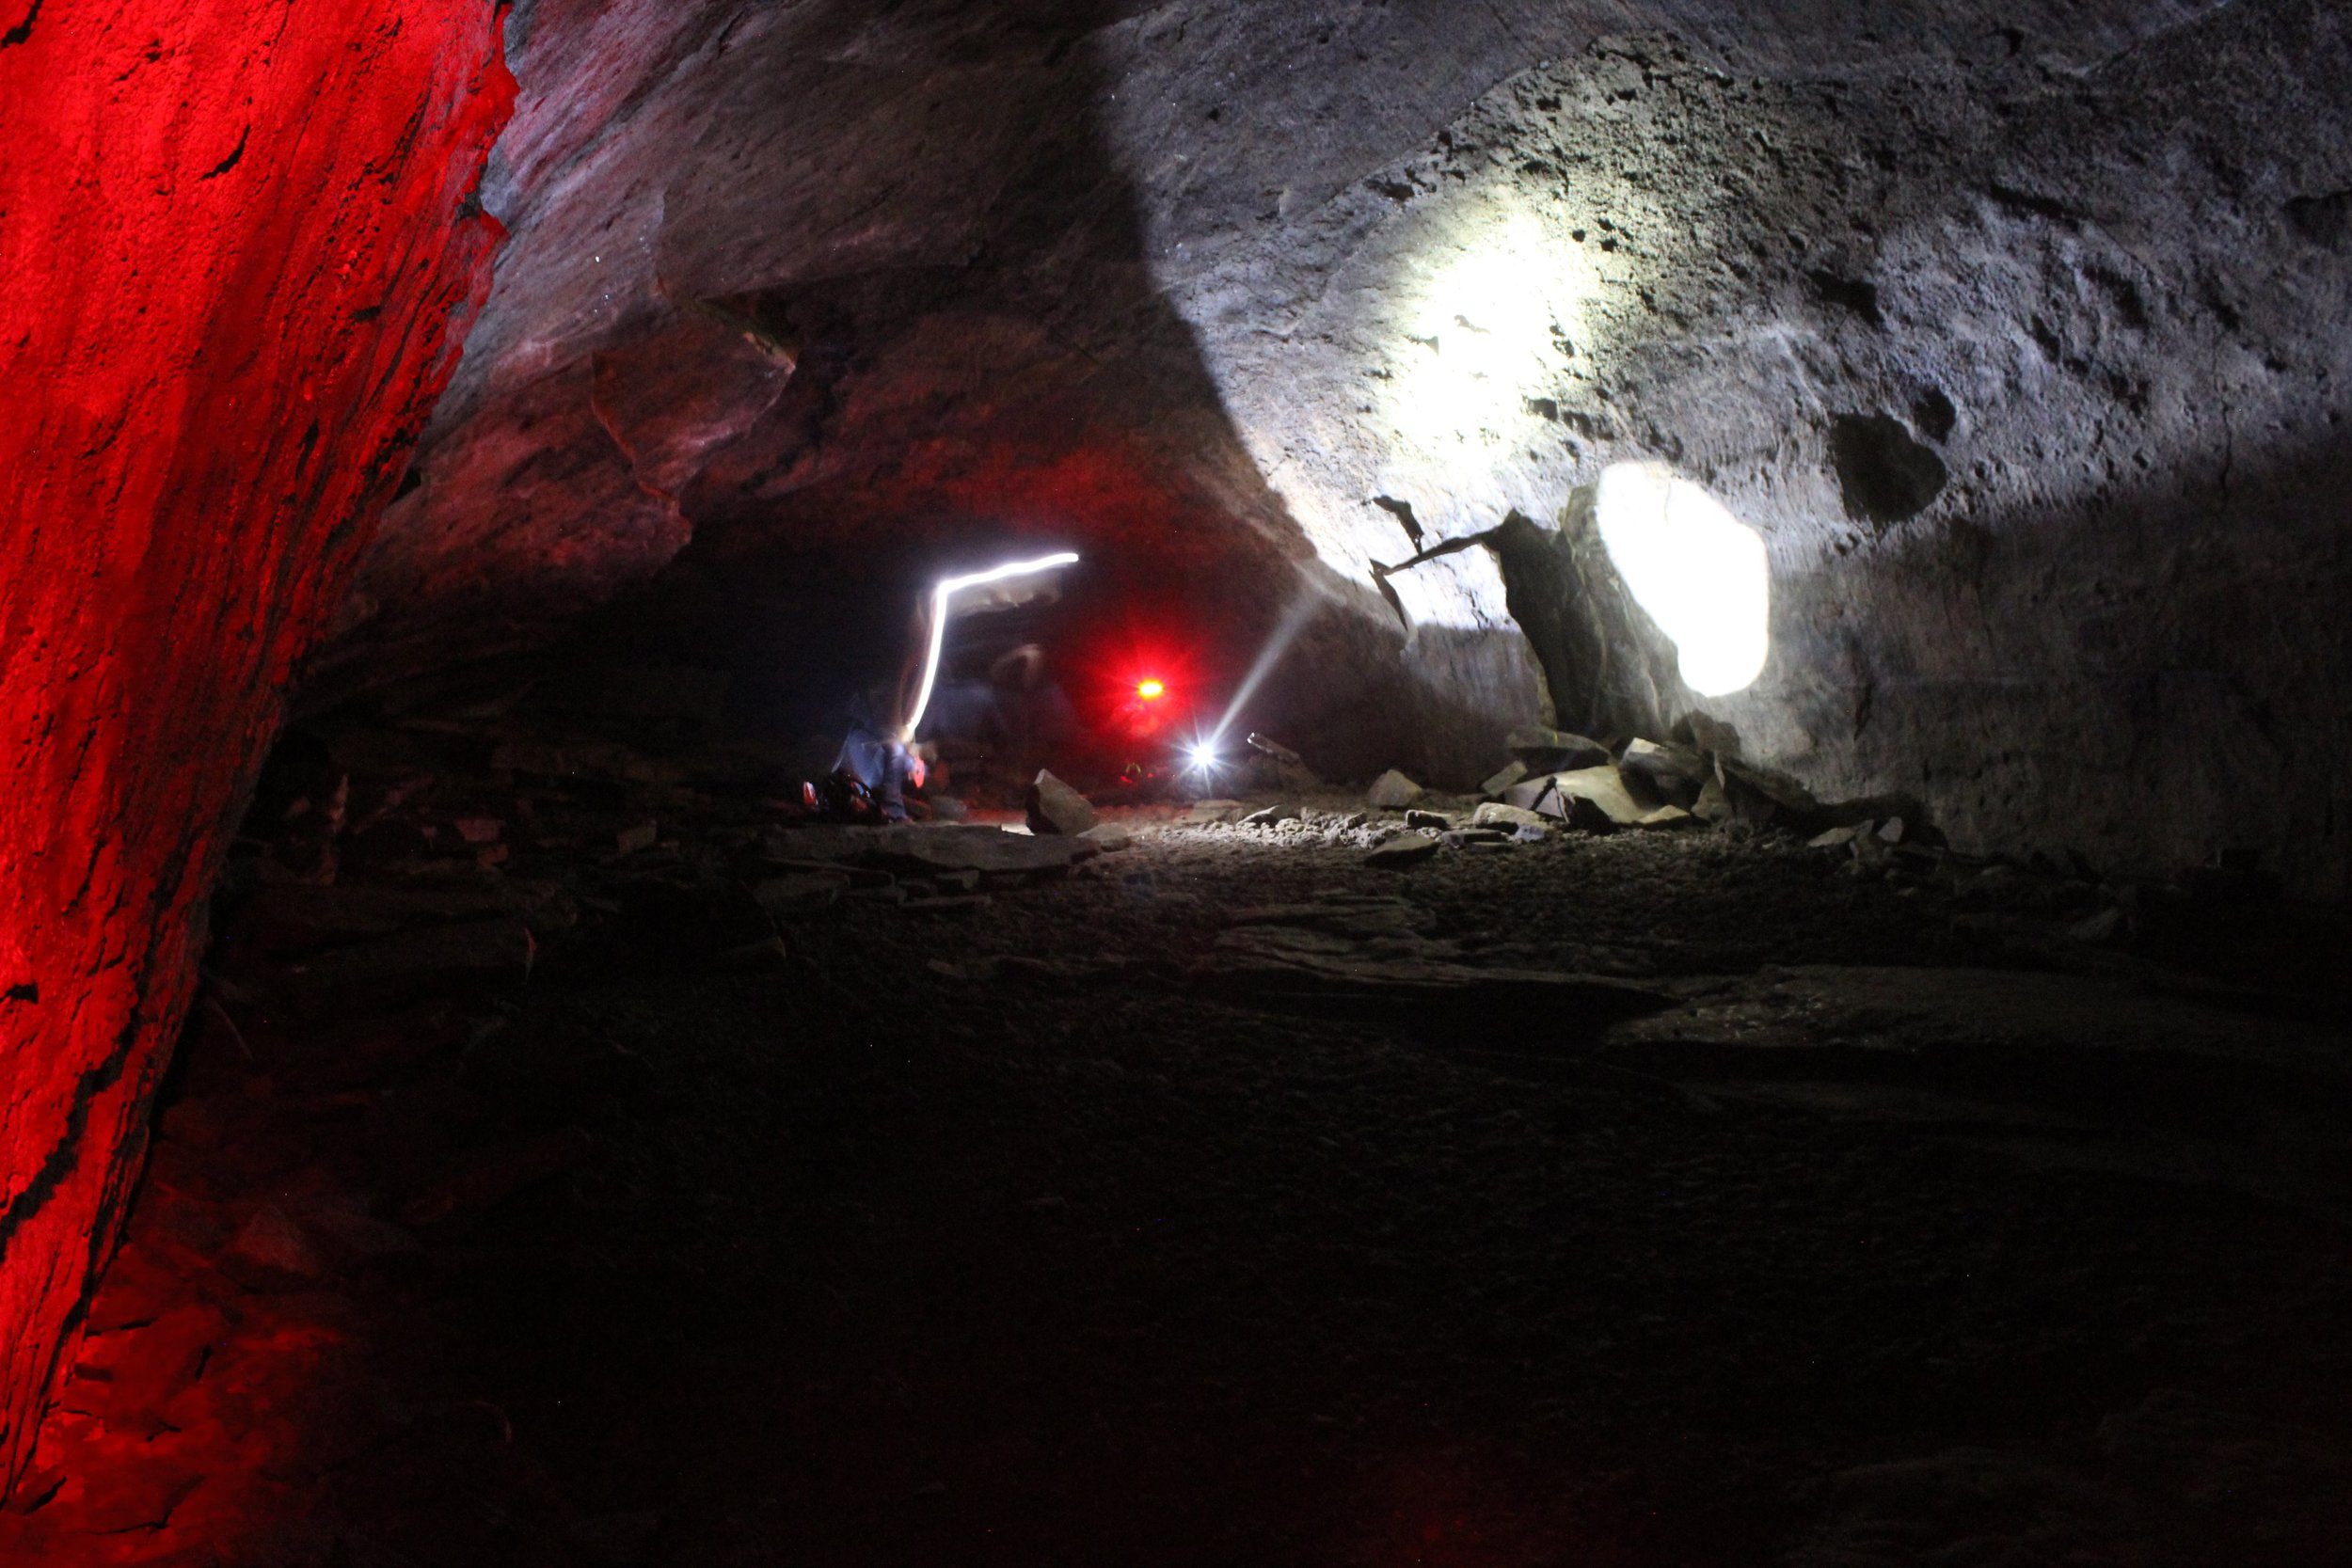 The end of the Lava River tube